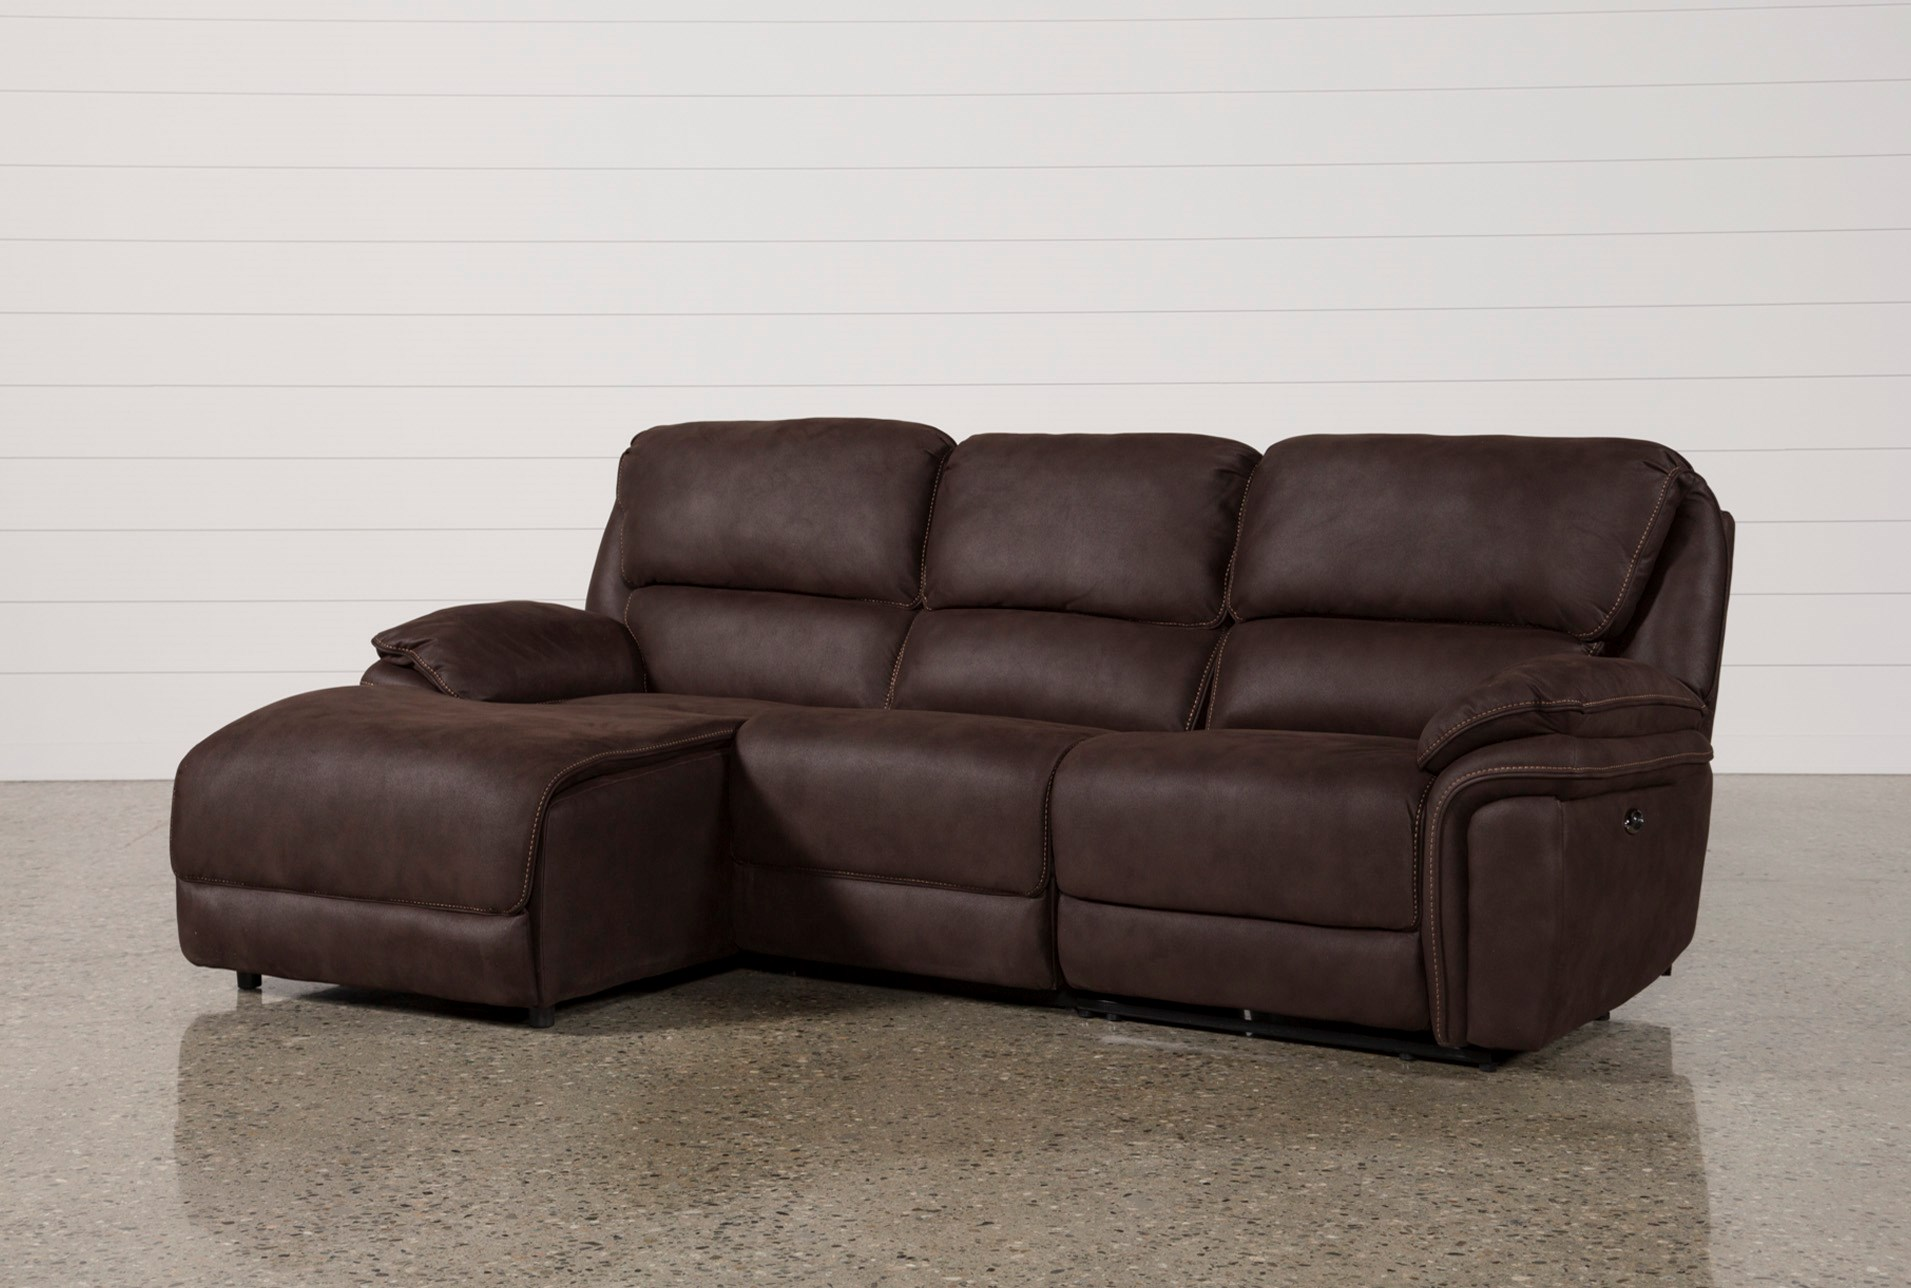 small sectional couch. Norfolk Chocolate 3 Piece Sectional W/Laf Chaise Small Couch 2